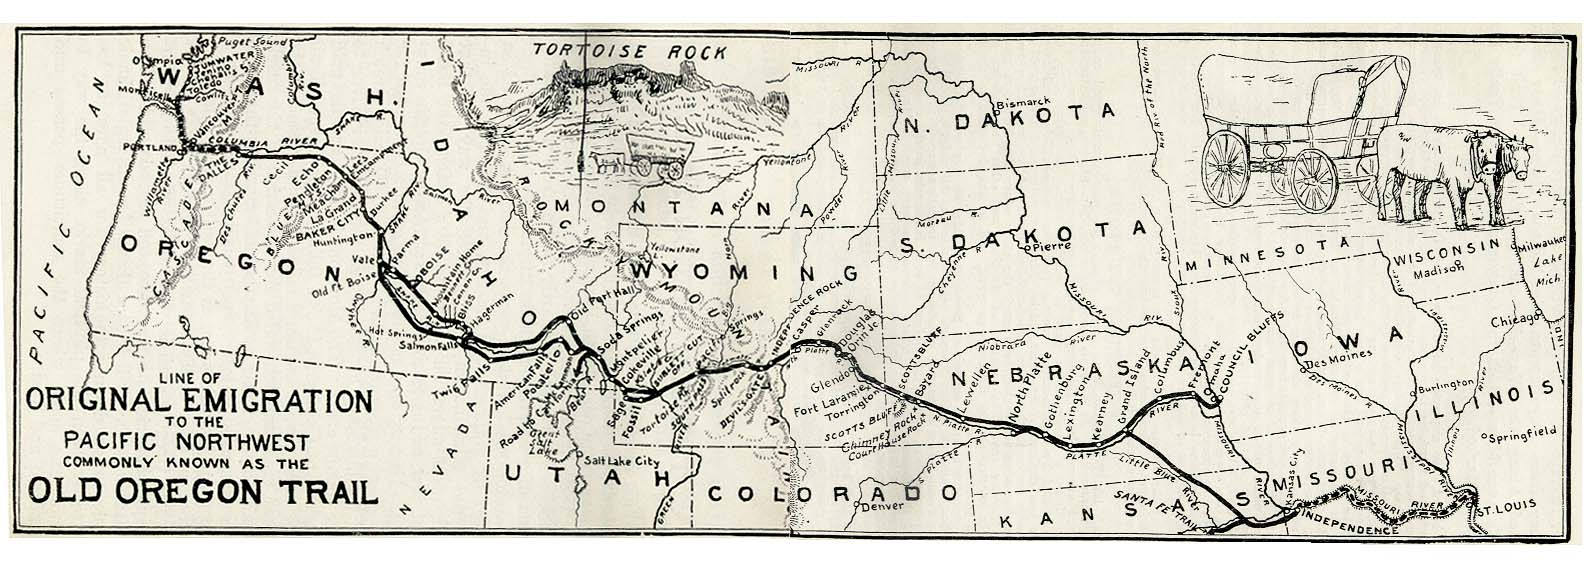 importance of oregon trail The oregon trail was a roughly 2,000-mile route from independence, missouri, to oregon city, oregon, which was used by hundreds of thousands of american pioneers in the mid-1800s to emigrate west .